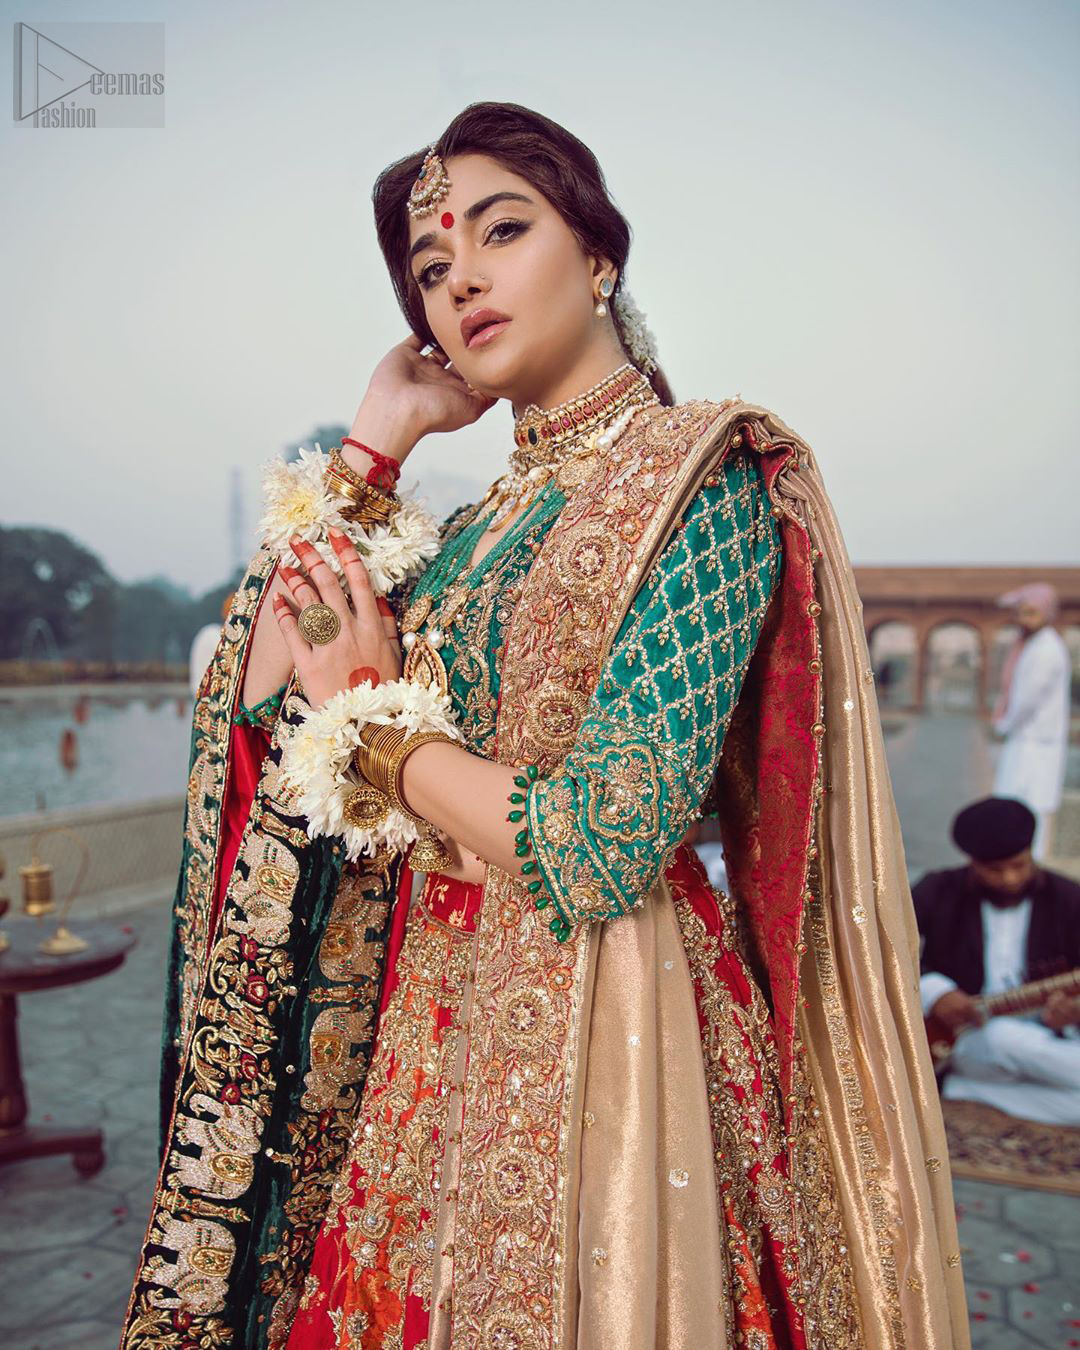 Classic, timeless and truly beautiful, our bridal dress is perfect for your unforgettable day. Excellence of craftsmanship is evident with intricate detailing that features the use of zardozi work. The blouse is beautifully adorned with geometric patterns and floral embroidery with golden zardozi work and finished with dangling beads. Complete the look with artfully coordinated lehenga which is ornamented with a bold and captivating design with a traditional intricate embroidery and scattered tiny floral motifs. The combination of red and orange for lehenga is also captivating. Elegance is personified when it gets paired up with golden dupatta having four sided embroidered border.